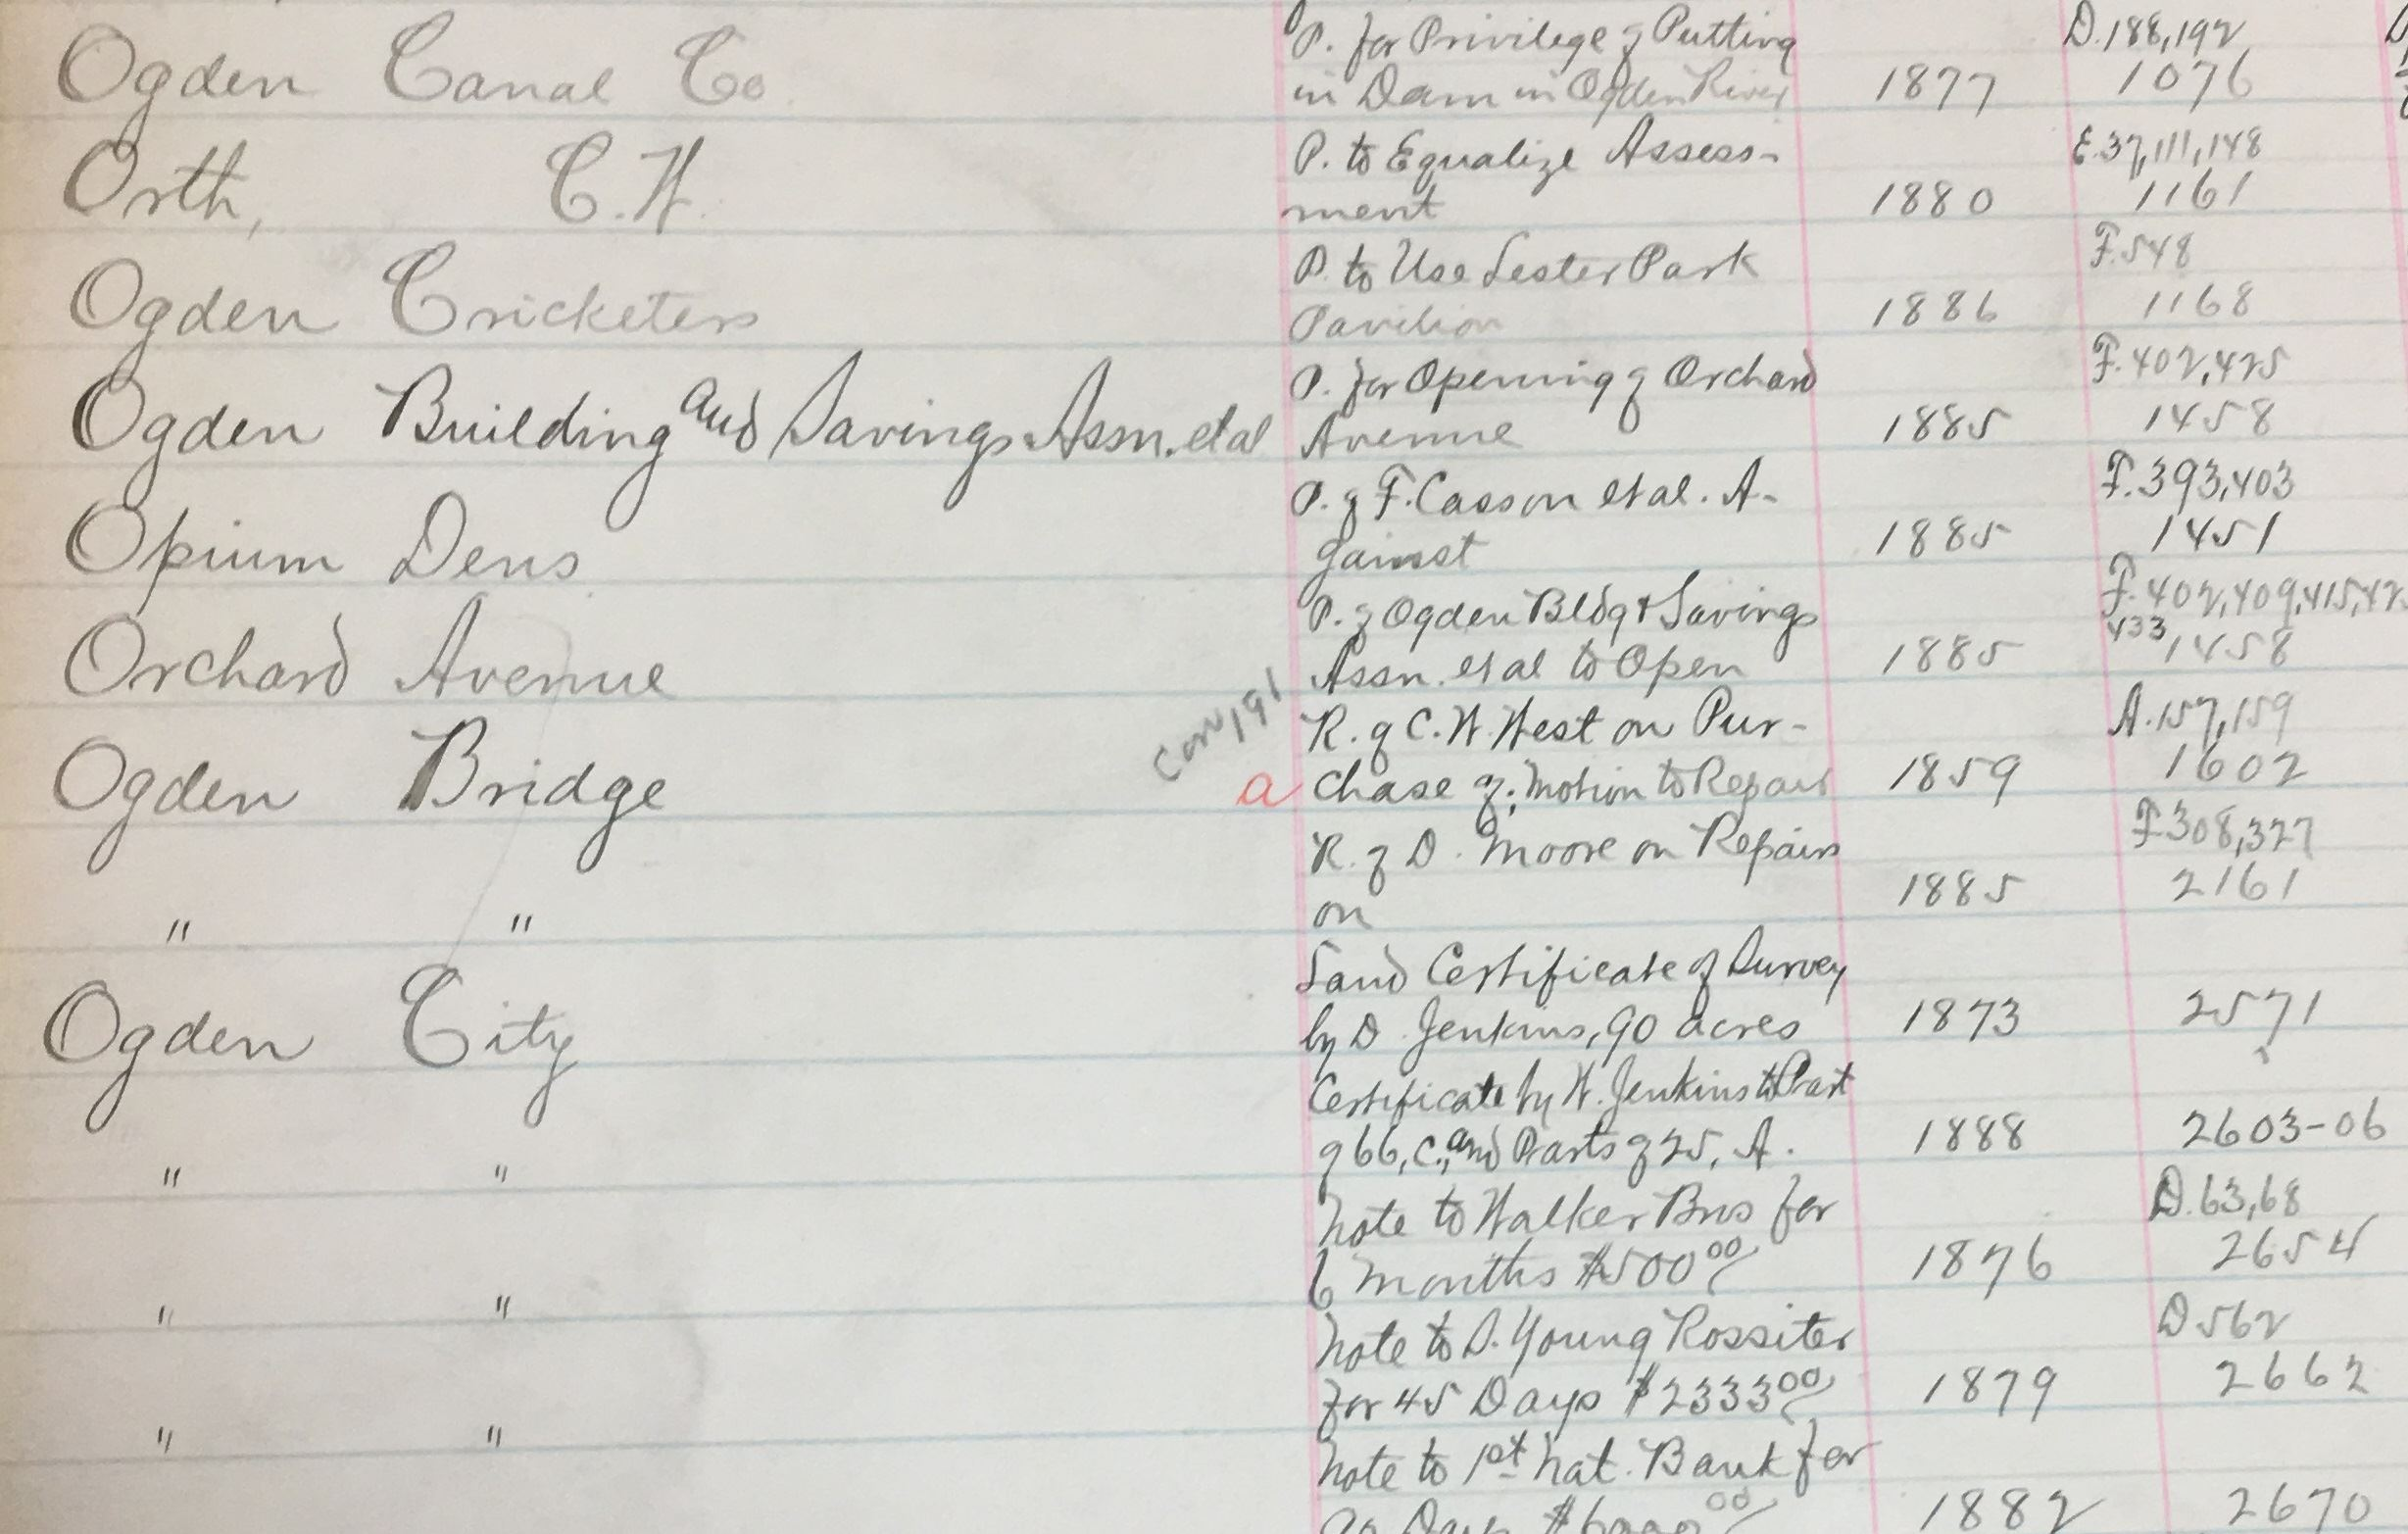 Index entries referencing a petition from the Ogden Canal Company for the privilege of putting a dam